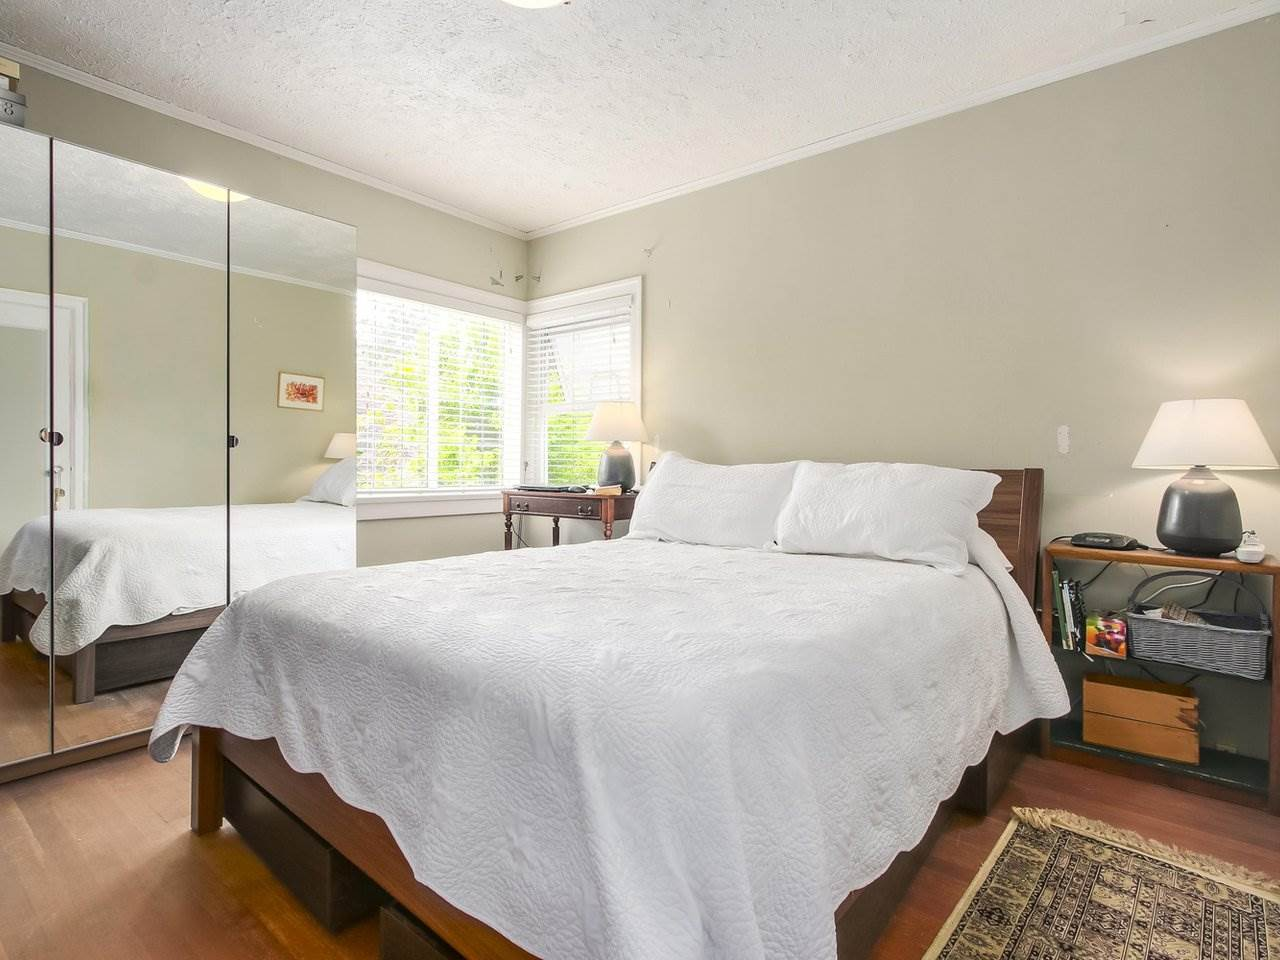 Photo 10: 3939 W KING EDWARD Avenue in Vancouver: Dunbar House for sale (Vancouver West)  : MLS® # R2191736